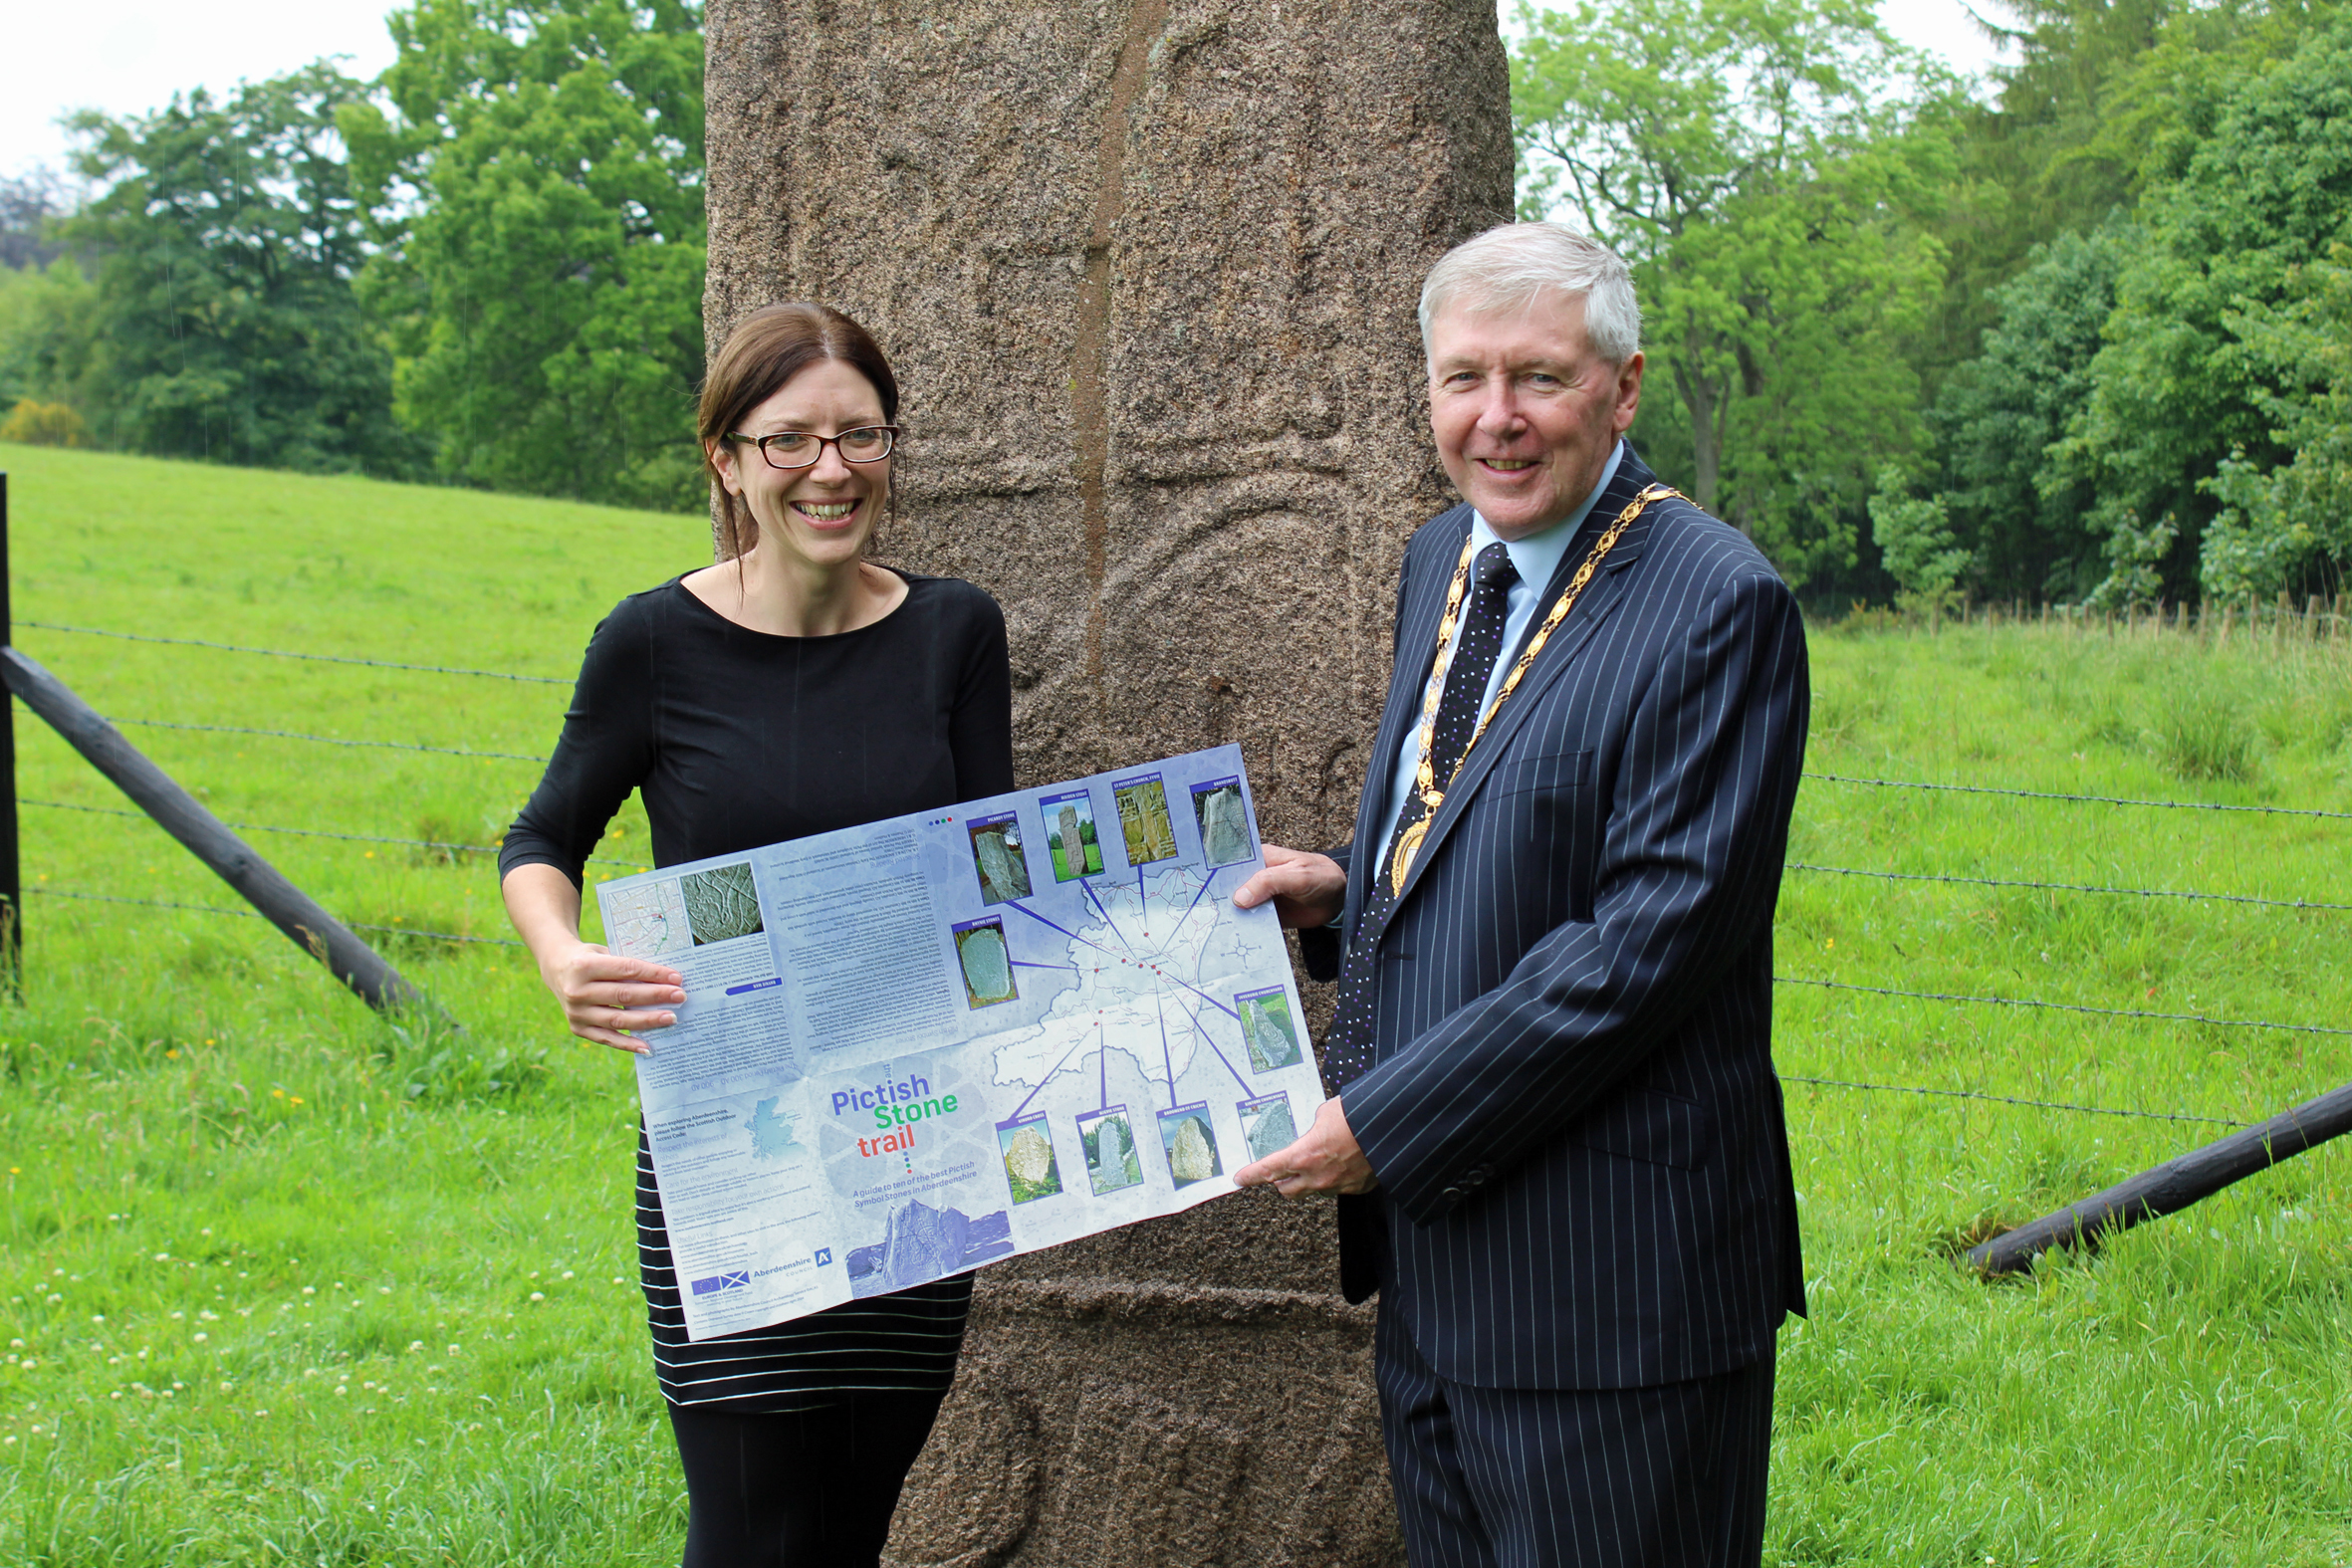 The Pictish Stone Trail is a guide to 10 of the best local sites and was launched at the Maiden Stone, near Inverurie by Provost of Aberdeenshire Hamish Vernal and council archaeologist Claire Herbert.